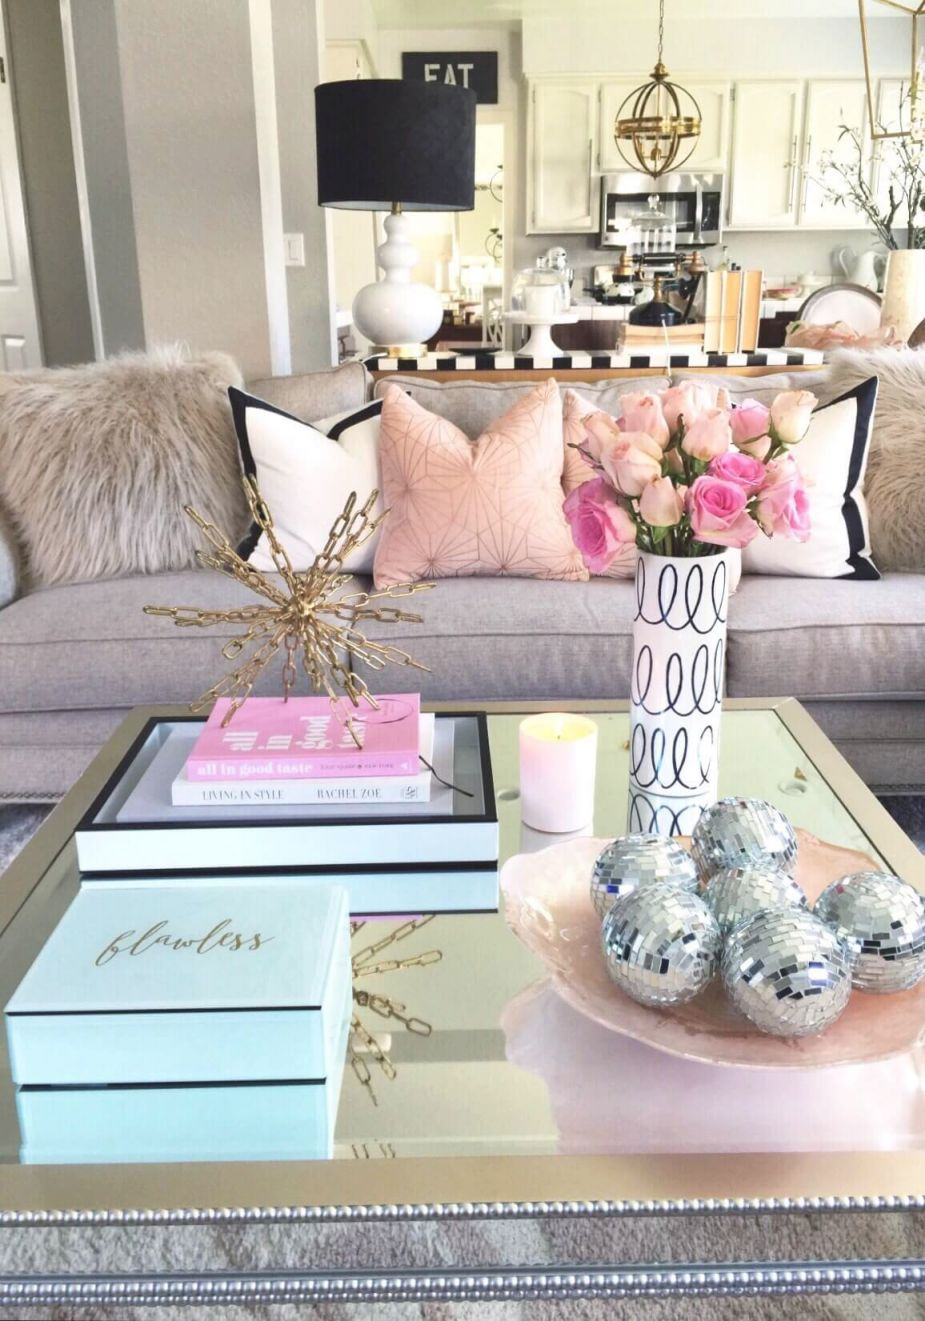 Decorate With Style: 16 Chic Coffee Table Decor Ideas with Living Room Coffee Table Decorating Ideas